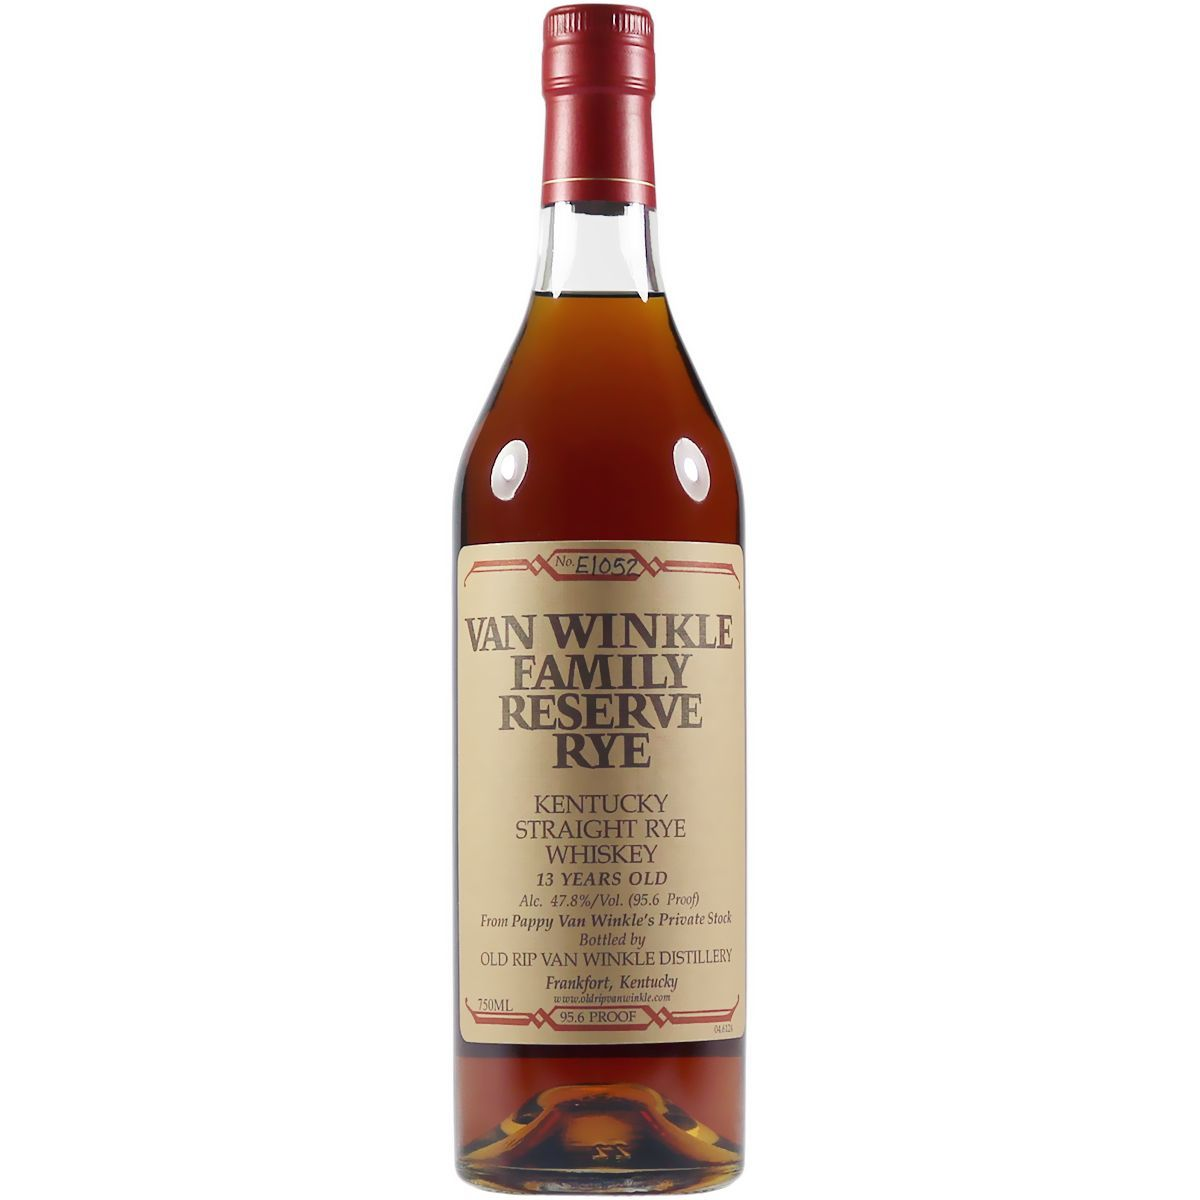 Pappy Van Winkle's Family Reserve 13 Year Old Kentucky Straight Rye Whiskey